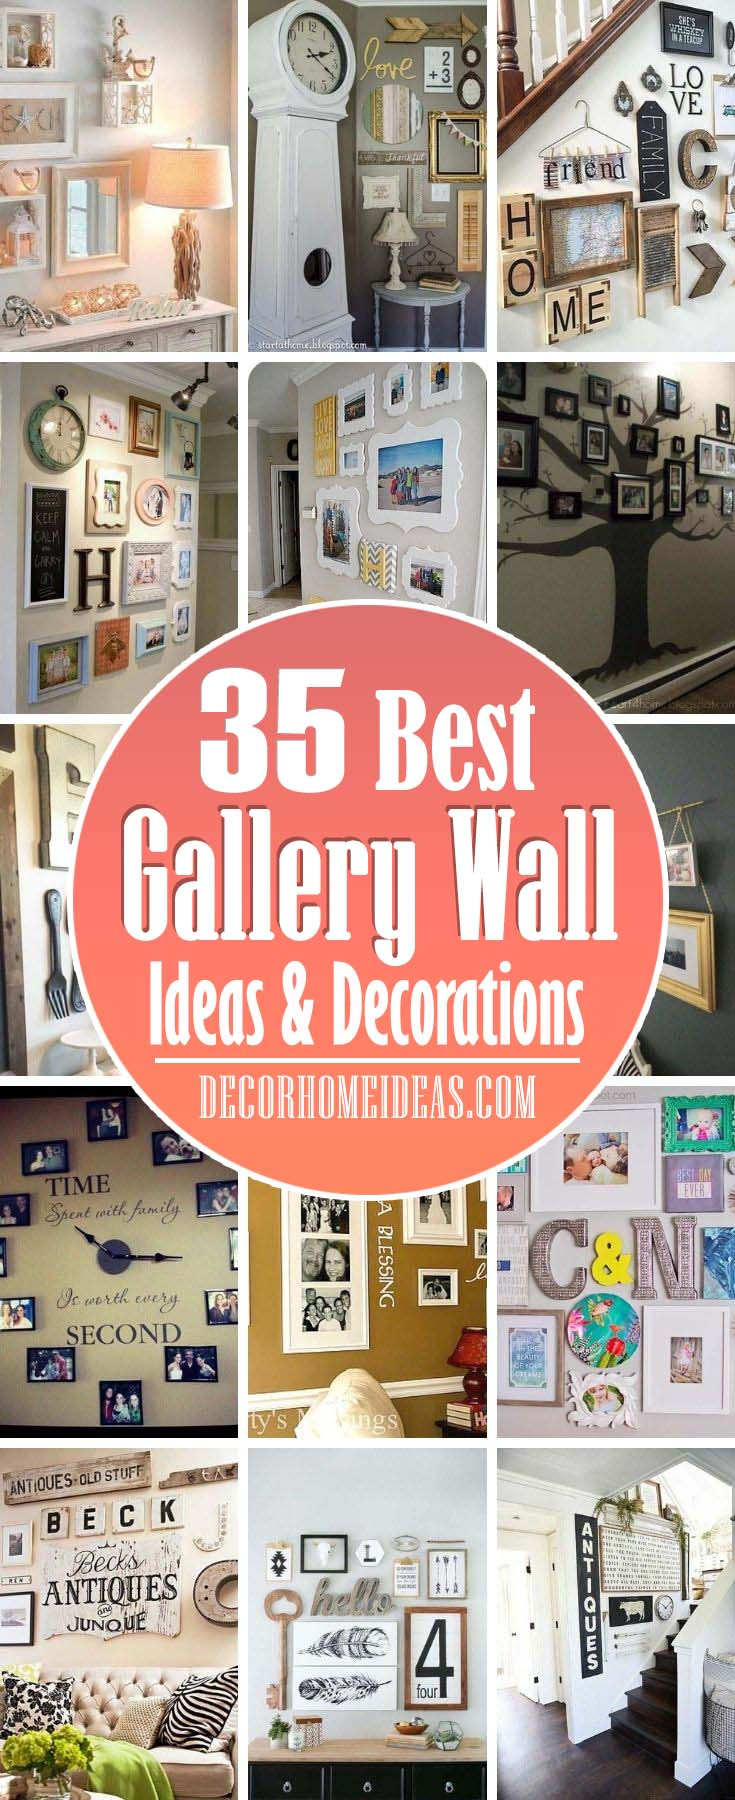 Best Gallery Wall Ideas. Take your gallery wall decor to the next level with these inspiring examples that will show you new ways to hang your photos and artwork. #decorhomeideas